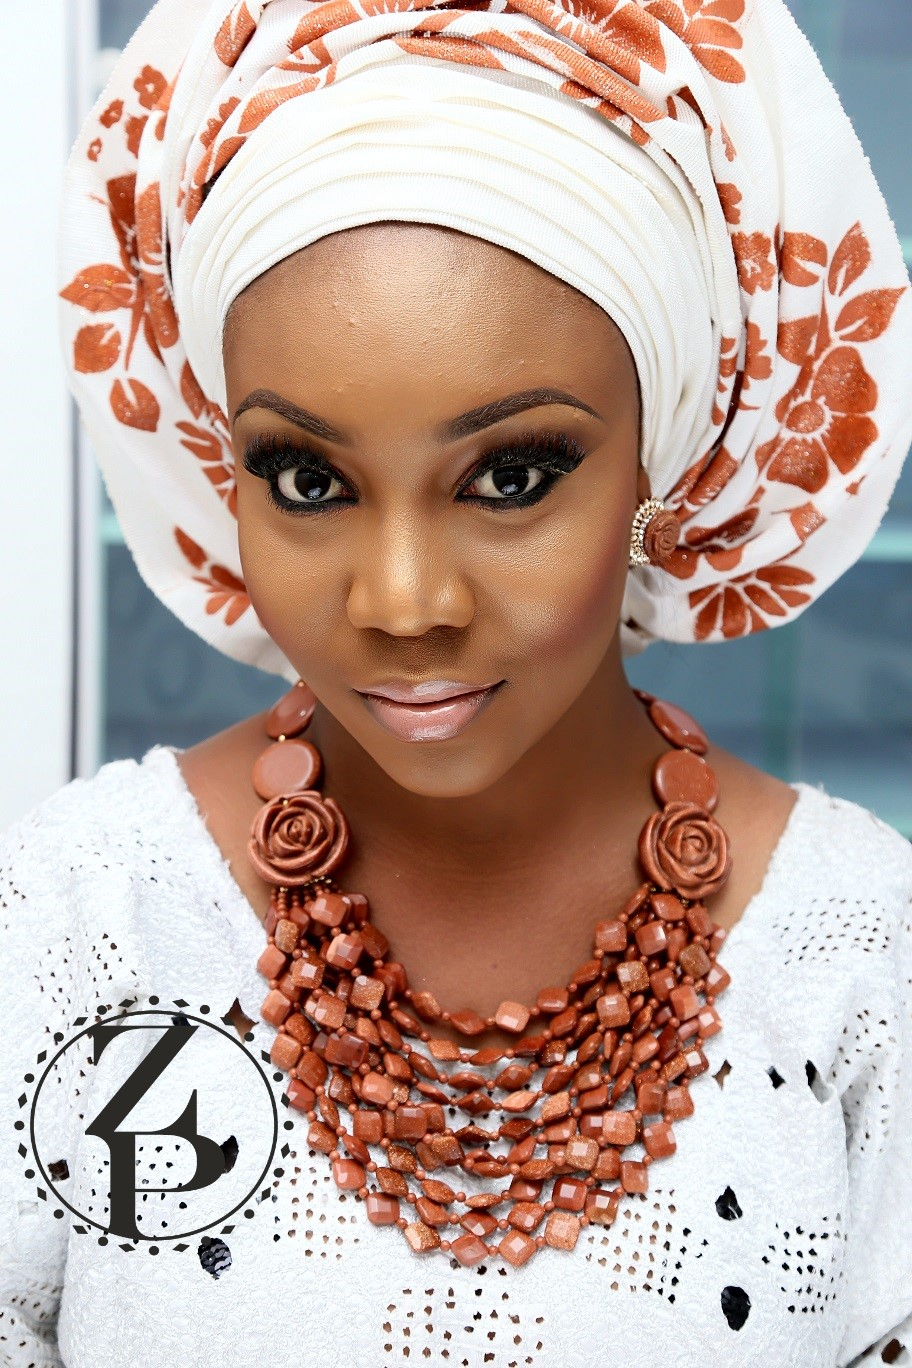 nude-glam-make-up-nigerian-wedding-outfit-and-bead-jewelry-zuri-perle.jpg